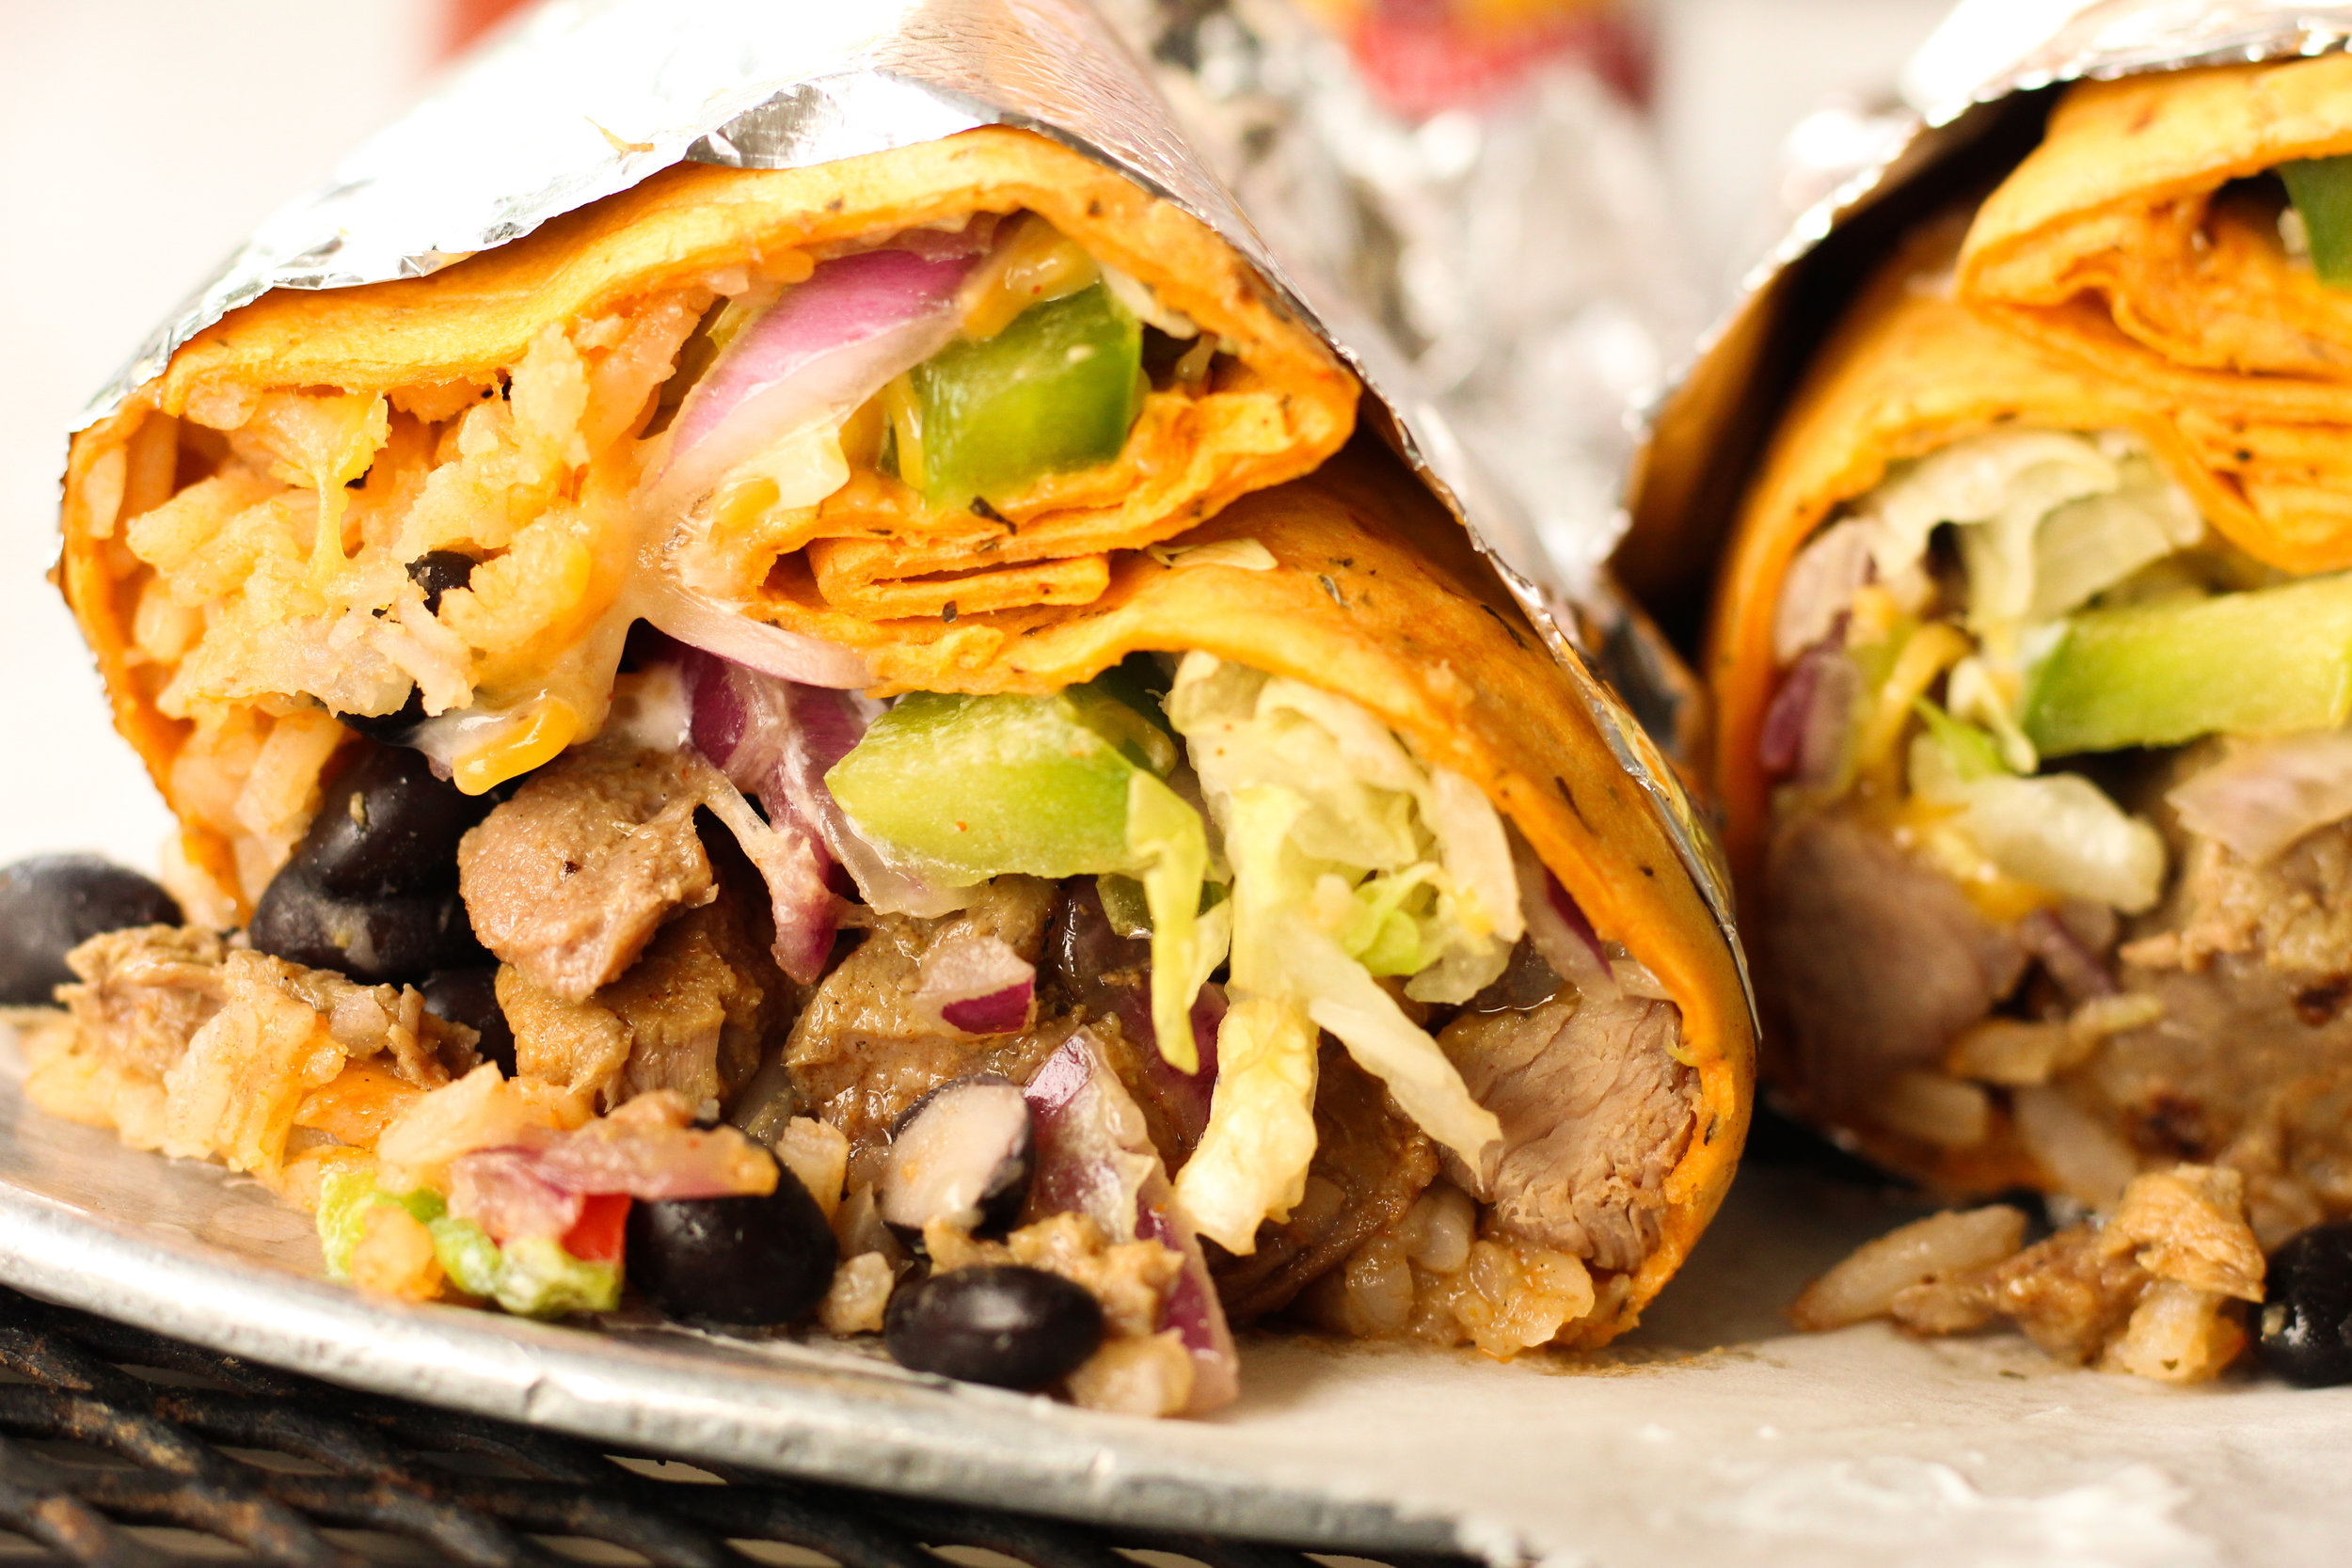 Booyas started as a burrito restaurant, and has grown to include a dozen more delicious menu items.